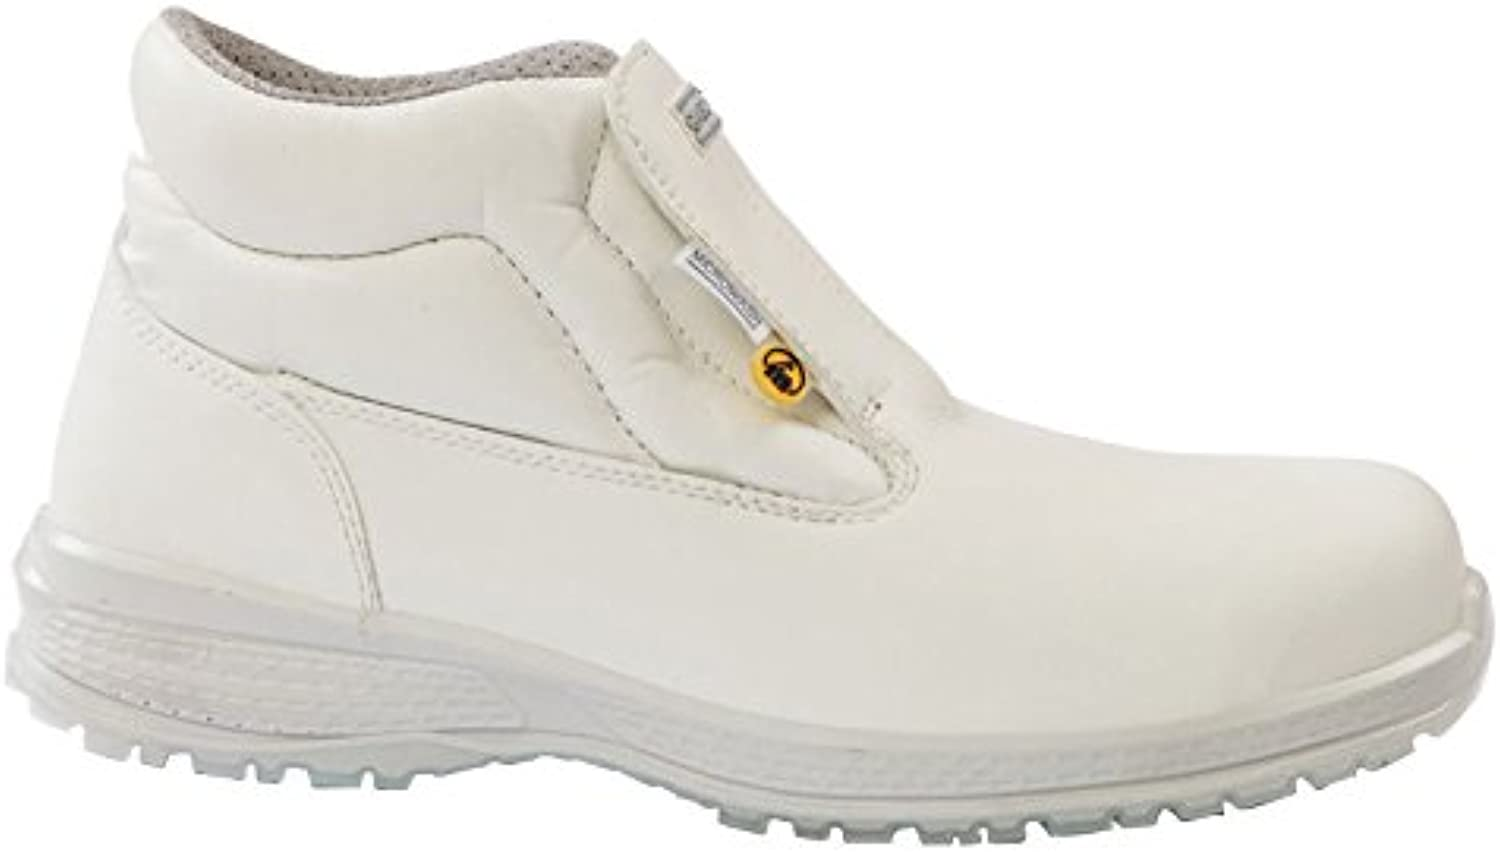 Giasco KU020I42 High shoes, Baltic, S2, Size US  8 Size UK  42, White